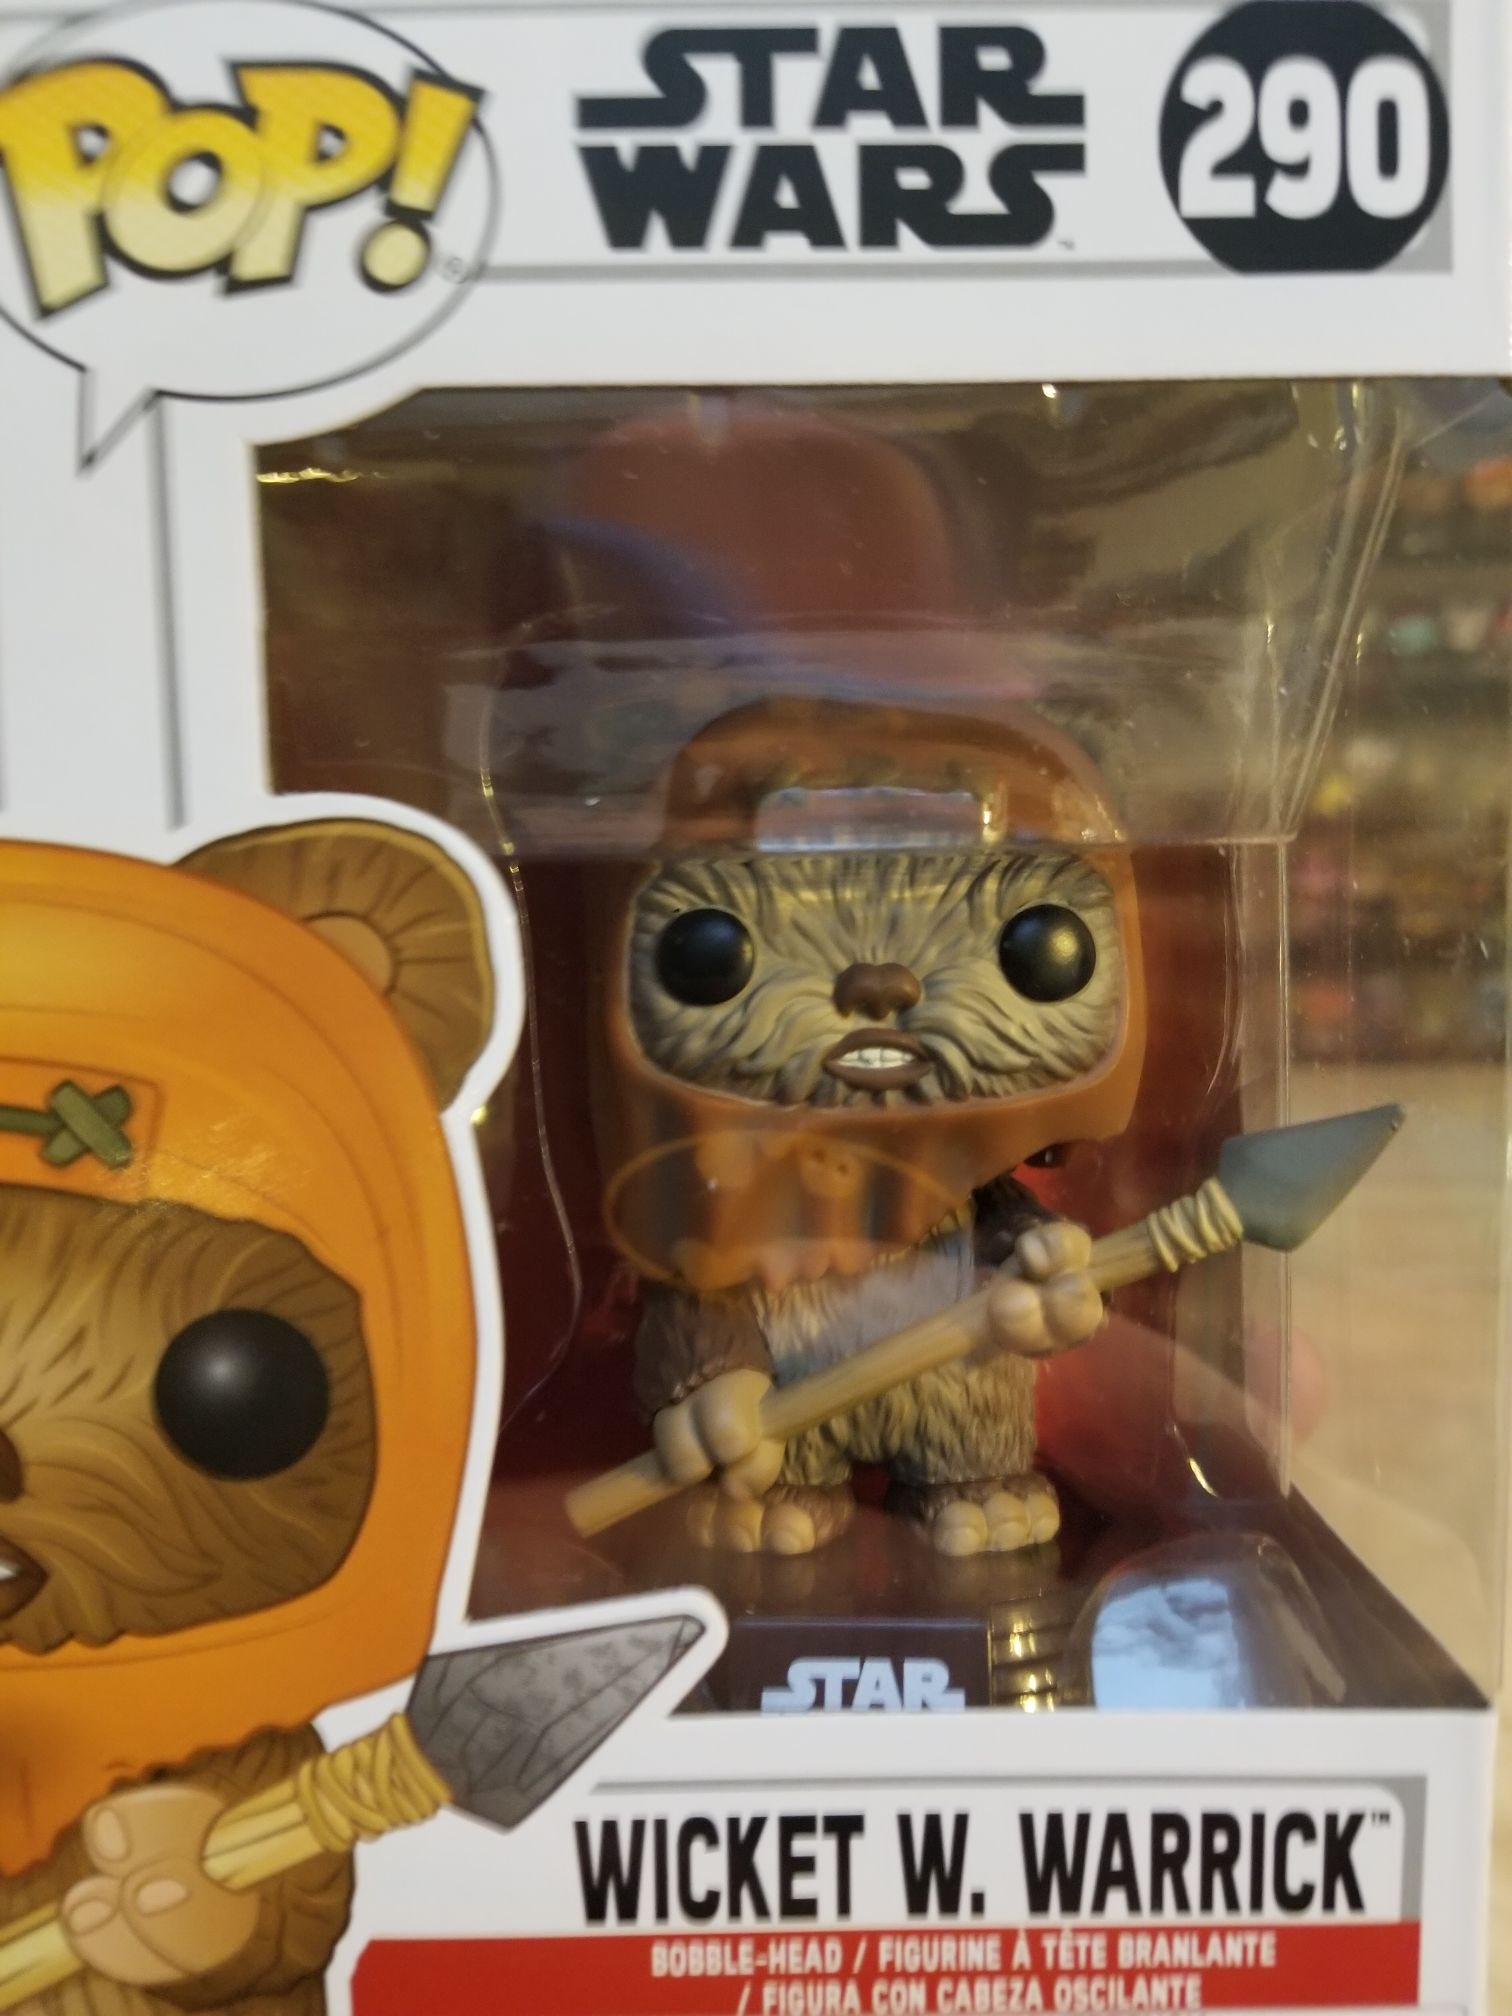 Wicket W. Warrick Funko - POP! (290) front image (front cover)